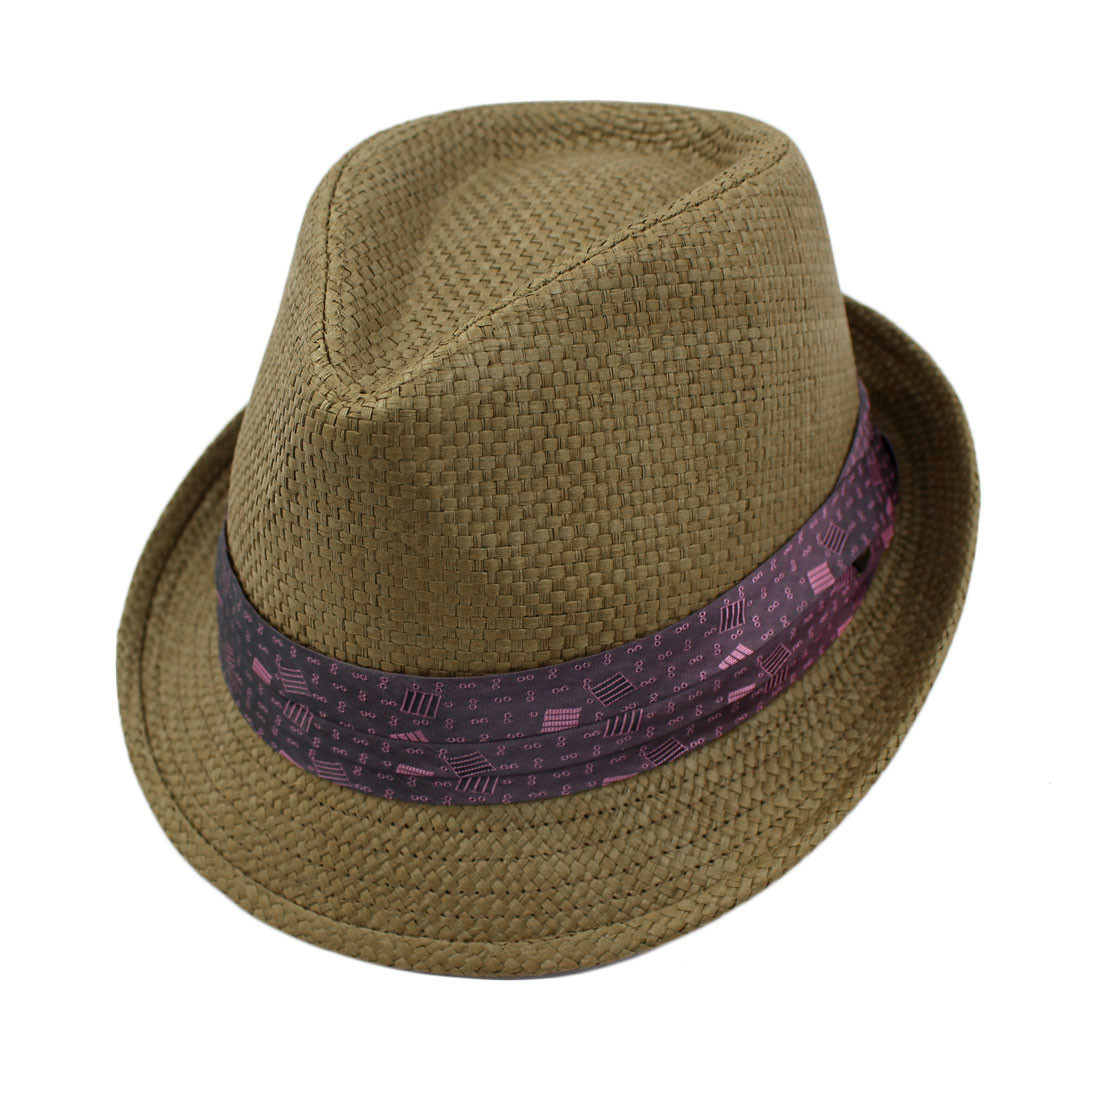 Peter Grimm Stoli Fedora brown hat with purple satin band.